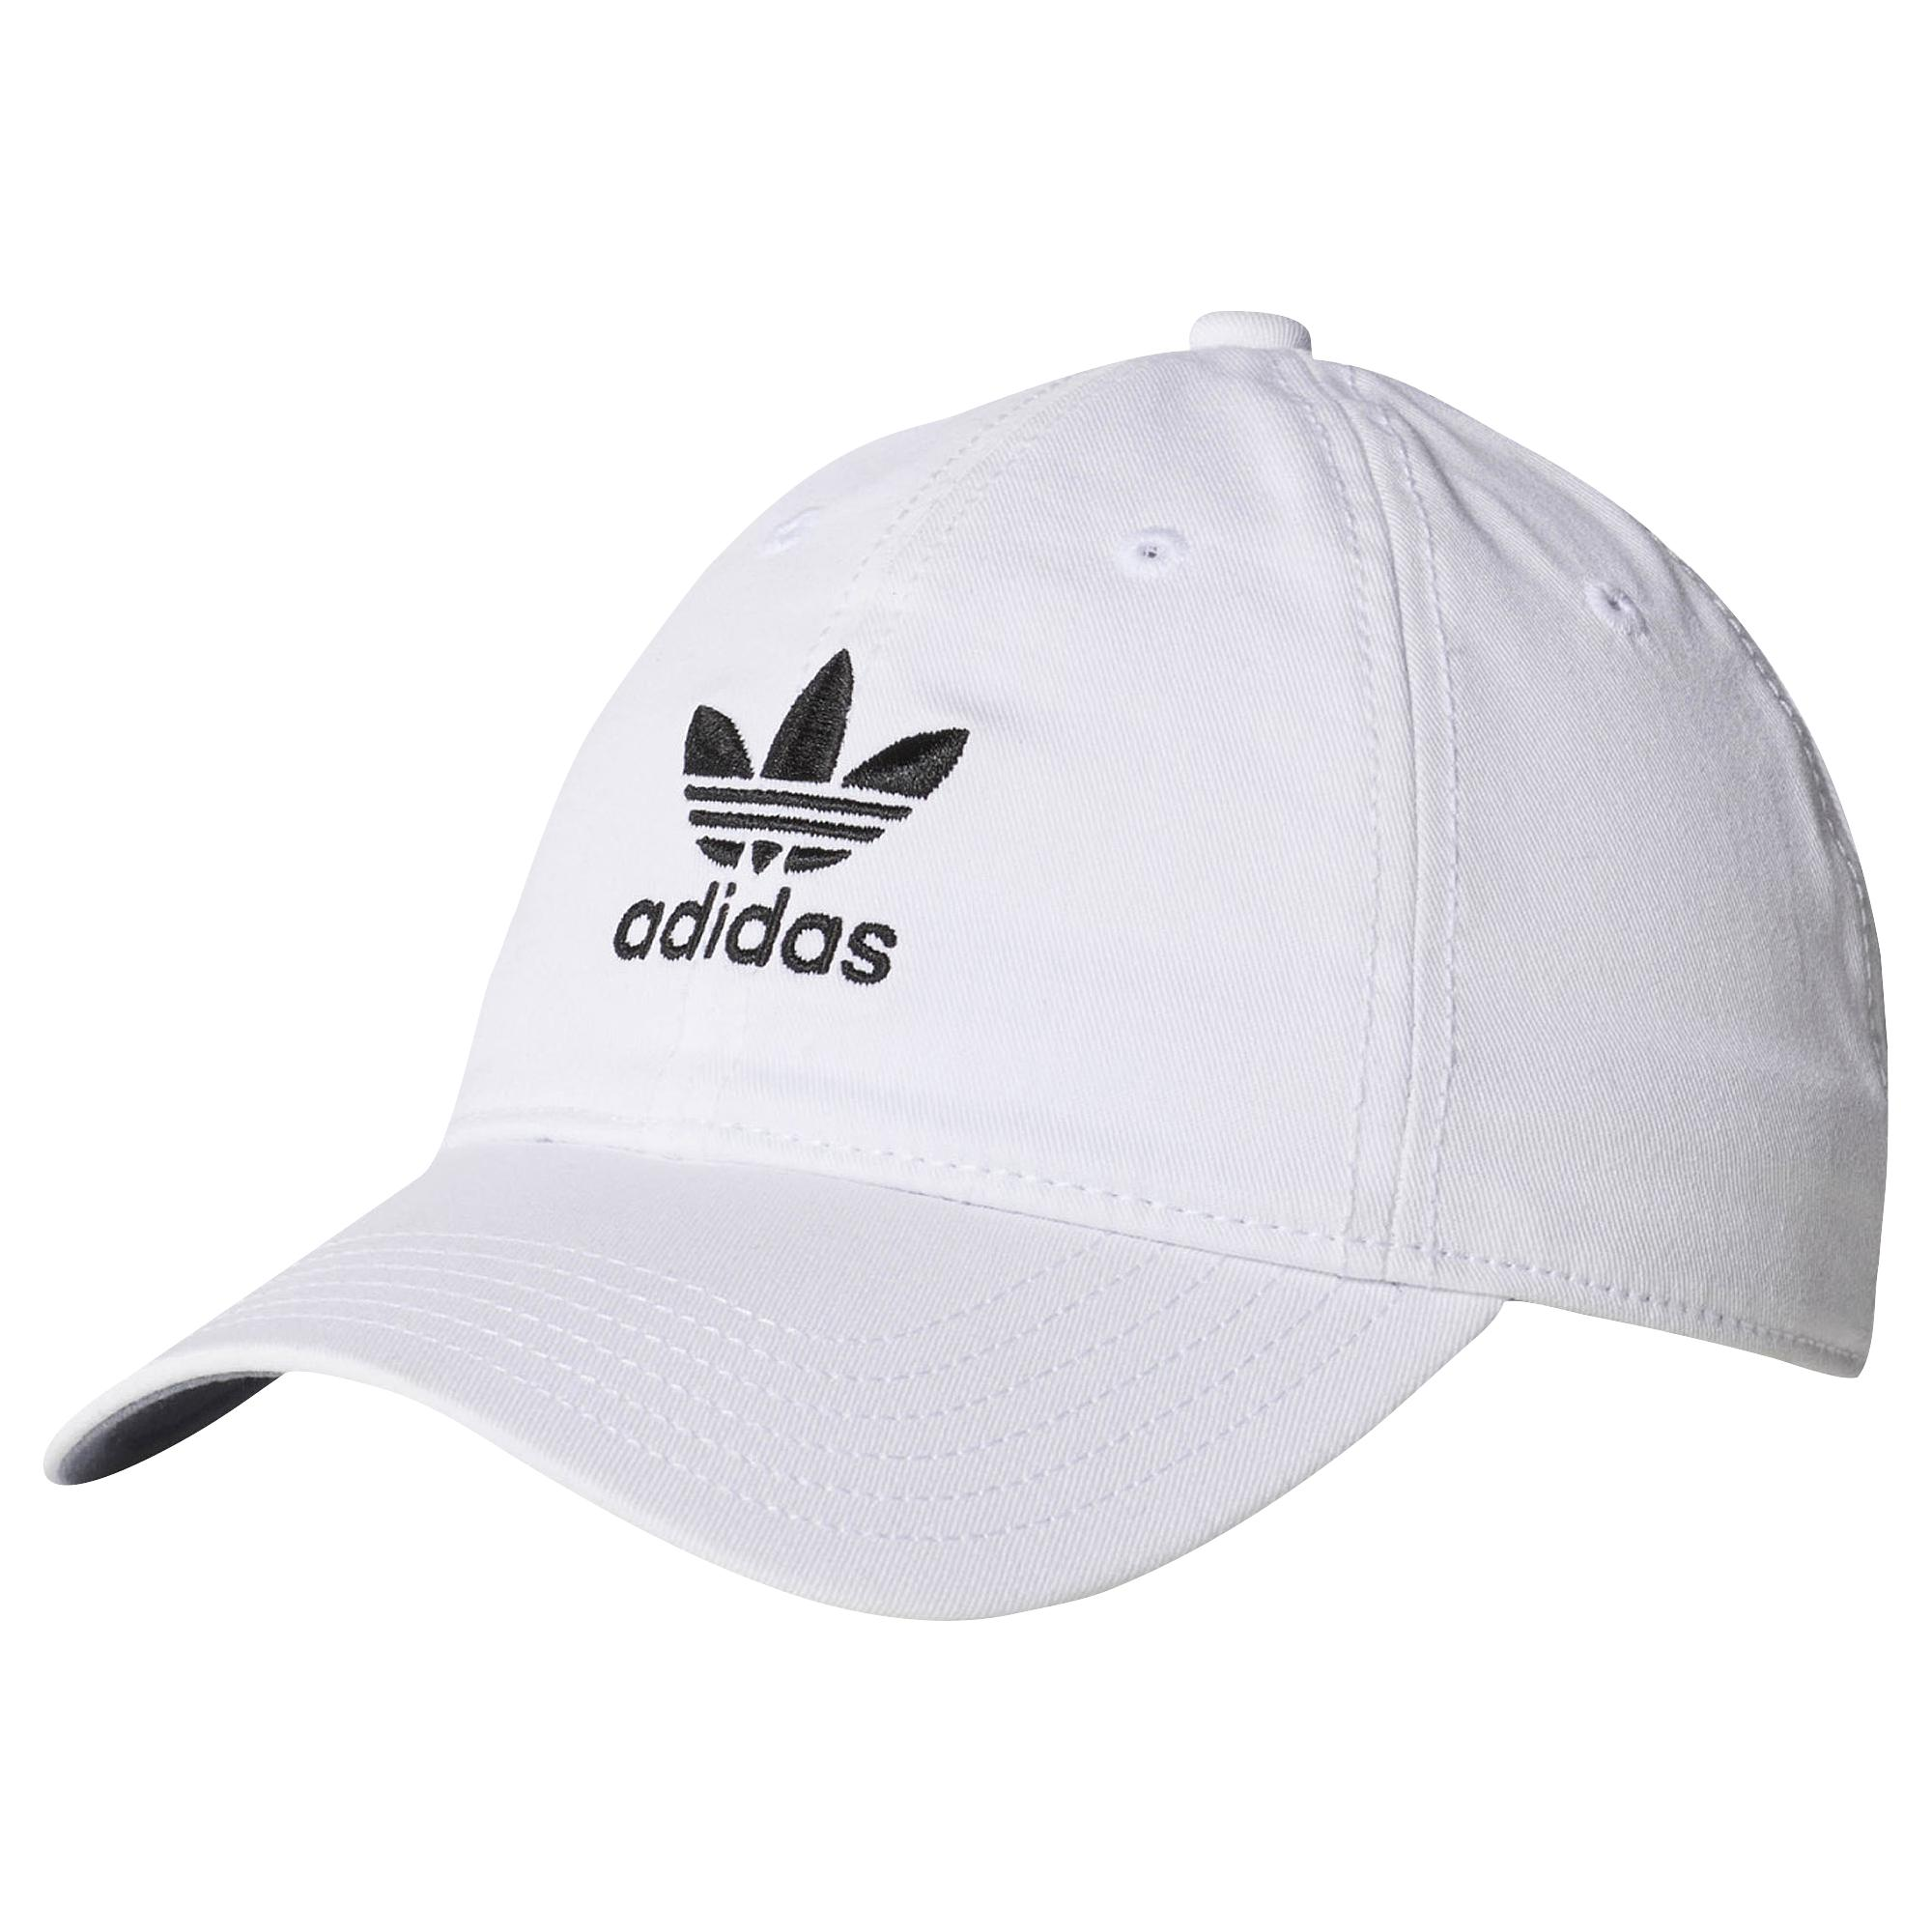 brand new 86080 cb97a adidas Originals. Women s White Relaxed Strapback Hat